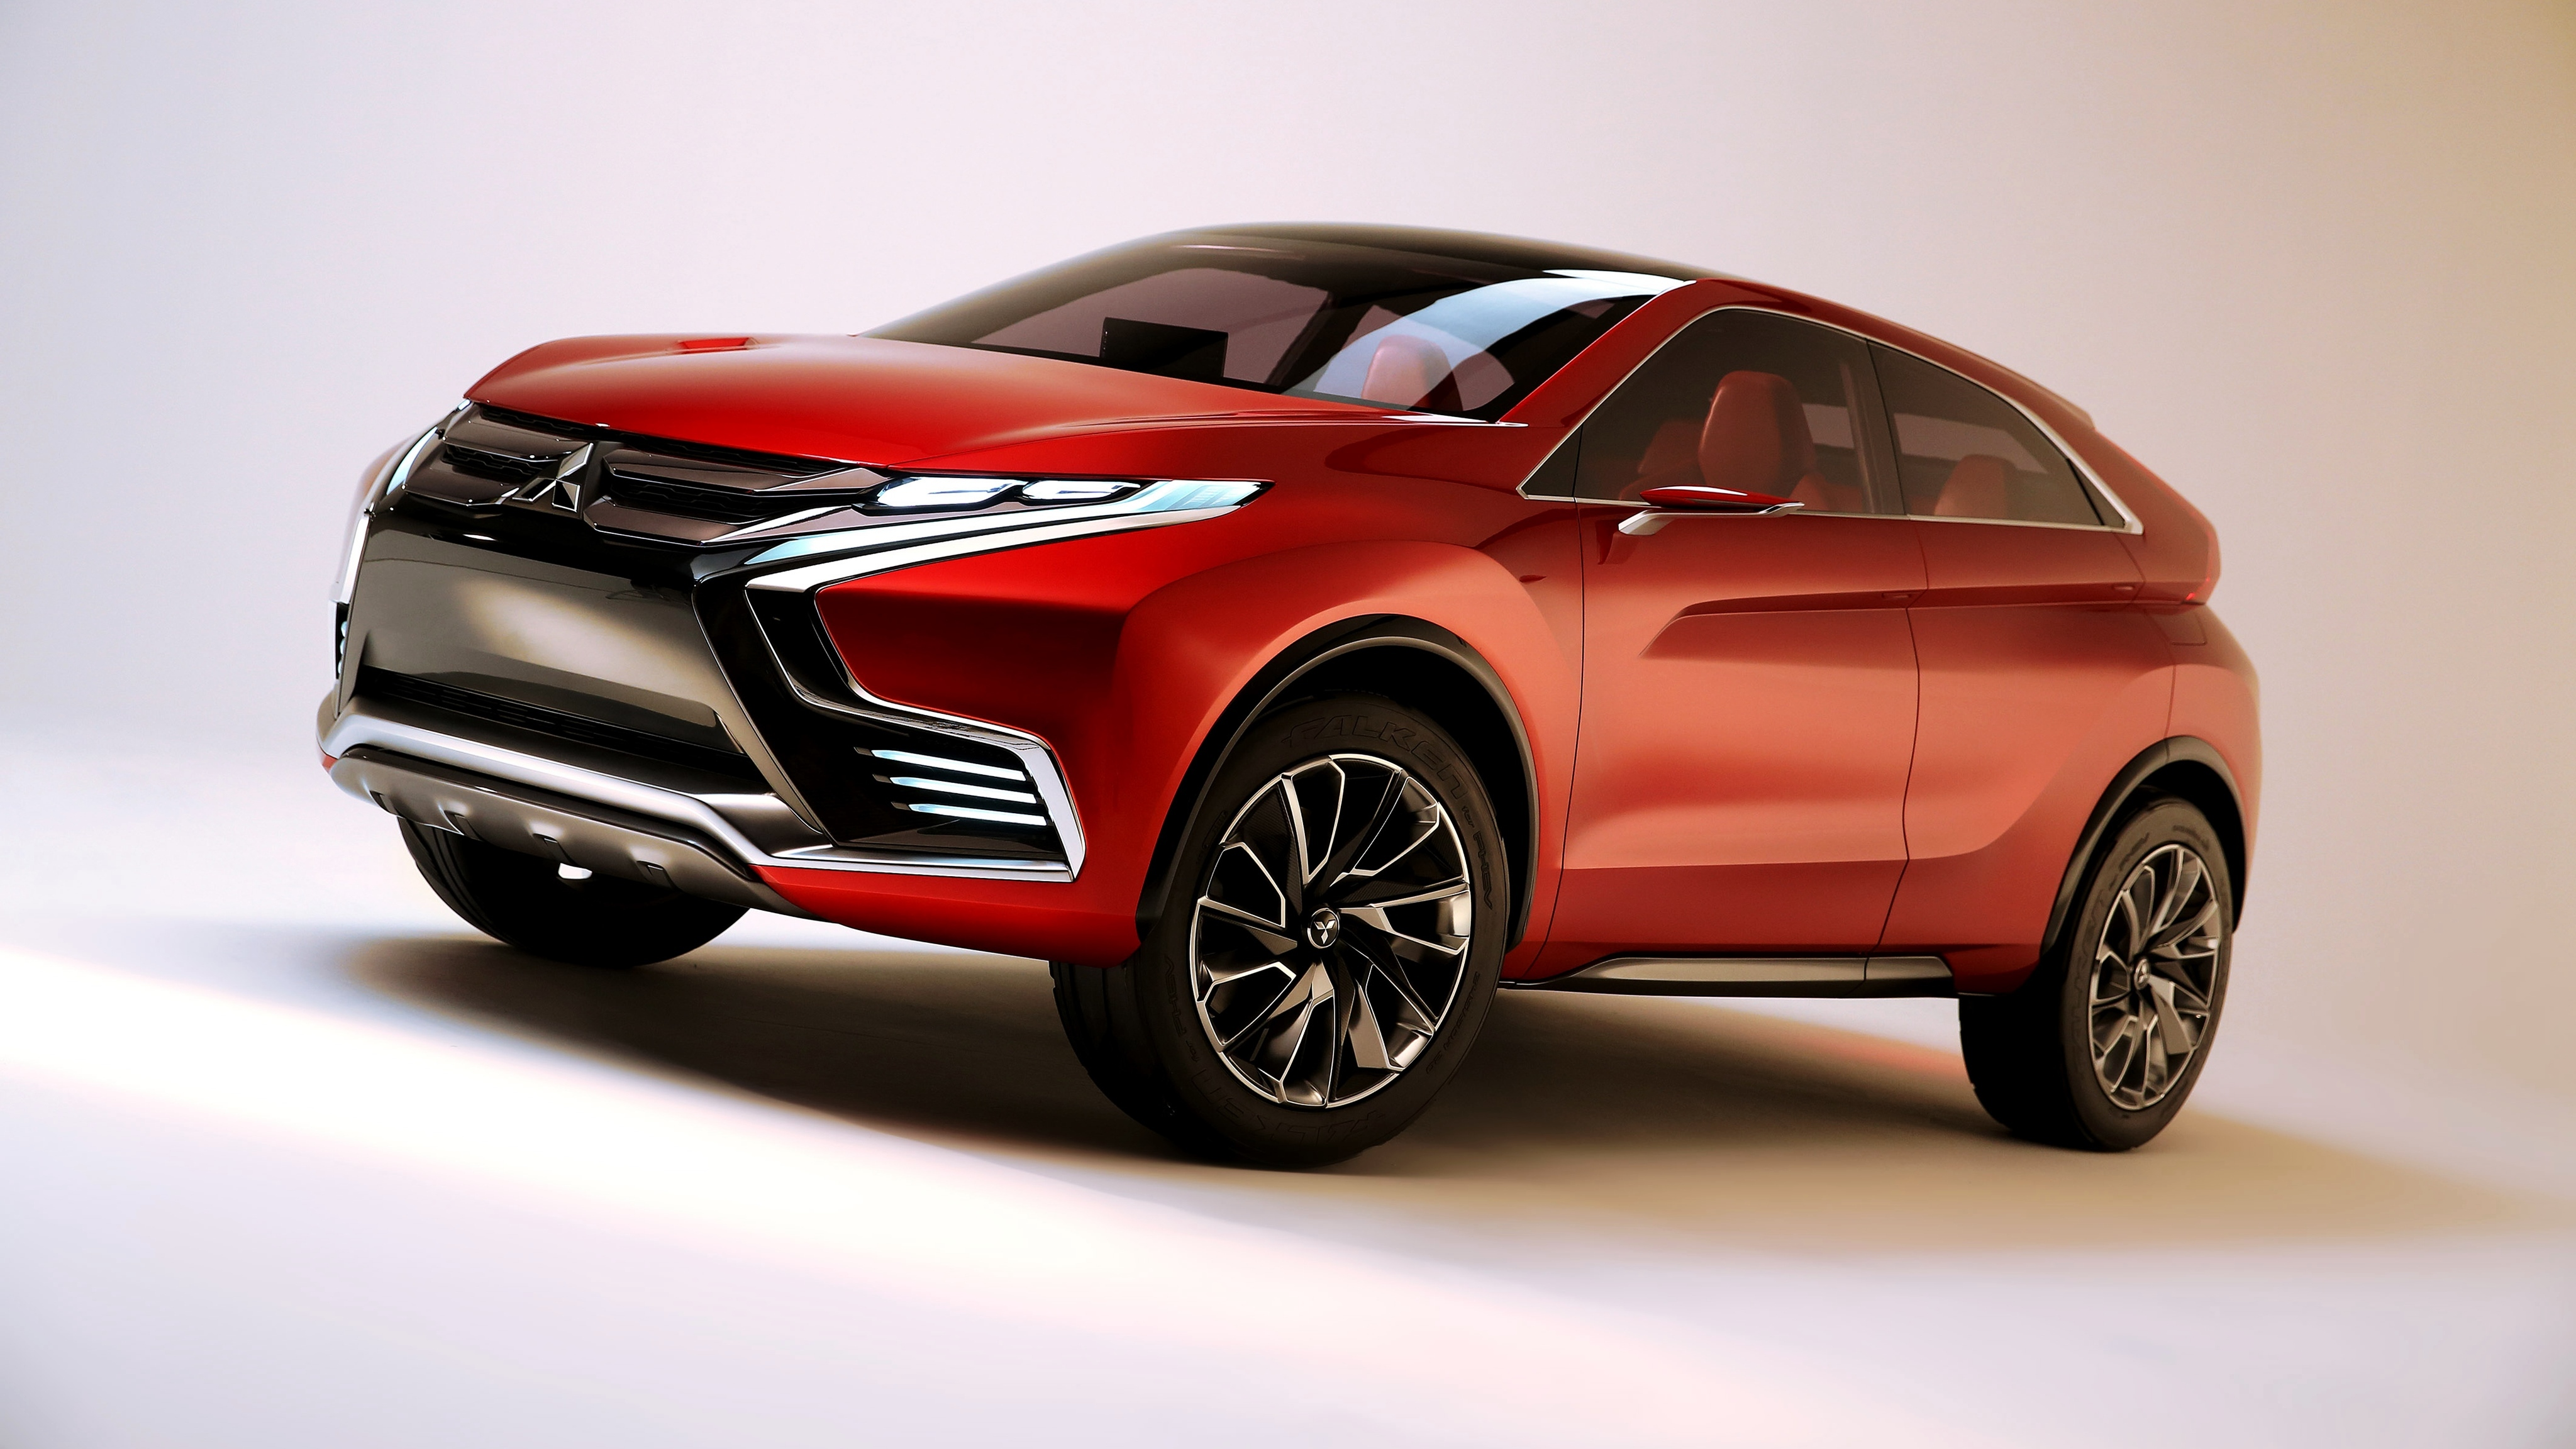 78798 download wallpaper Cars, Mitsubishi, Concept, Xr-Phev, 2015 screensavers and pictures for free